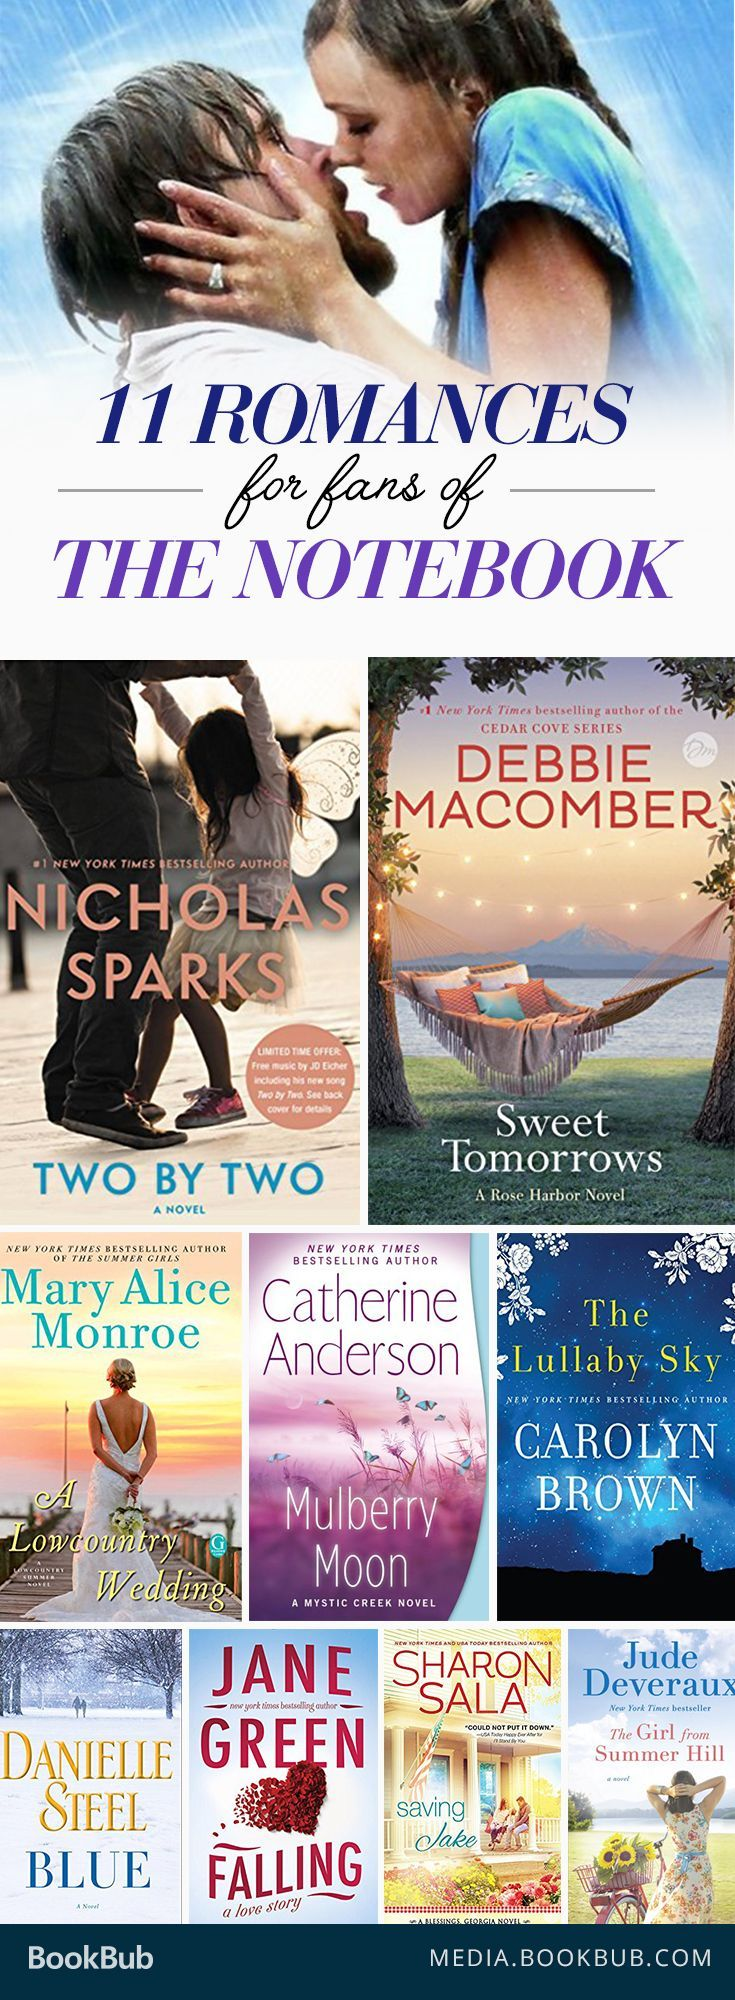 Romantic books to read this year -- perfect for fans of The Notebook by Nicholas Sparks.